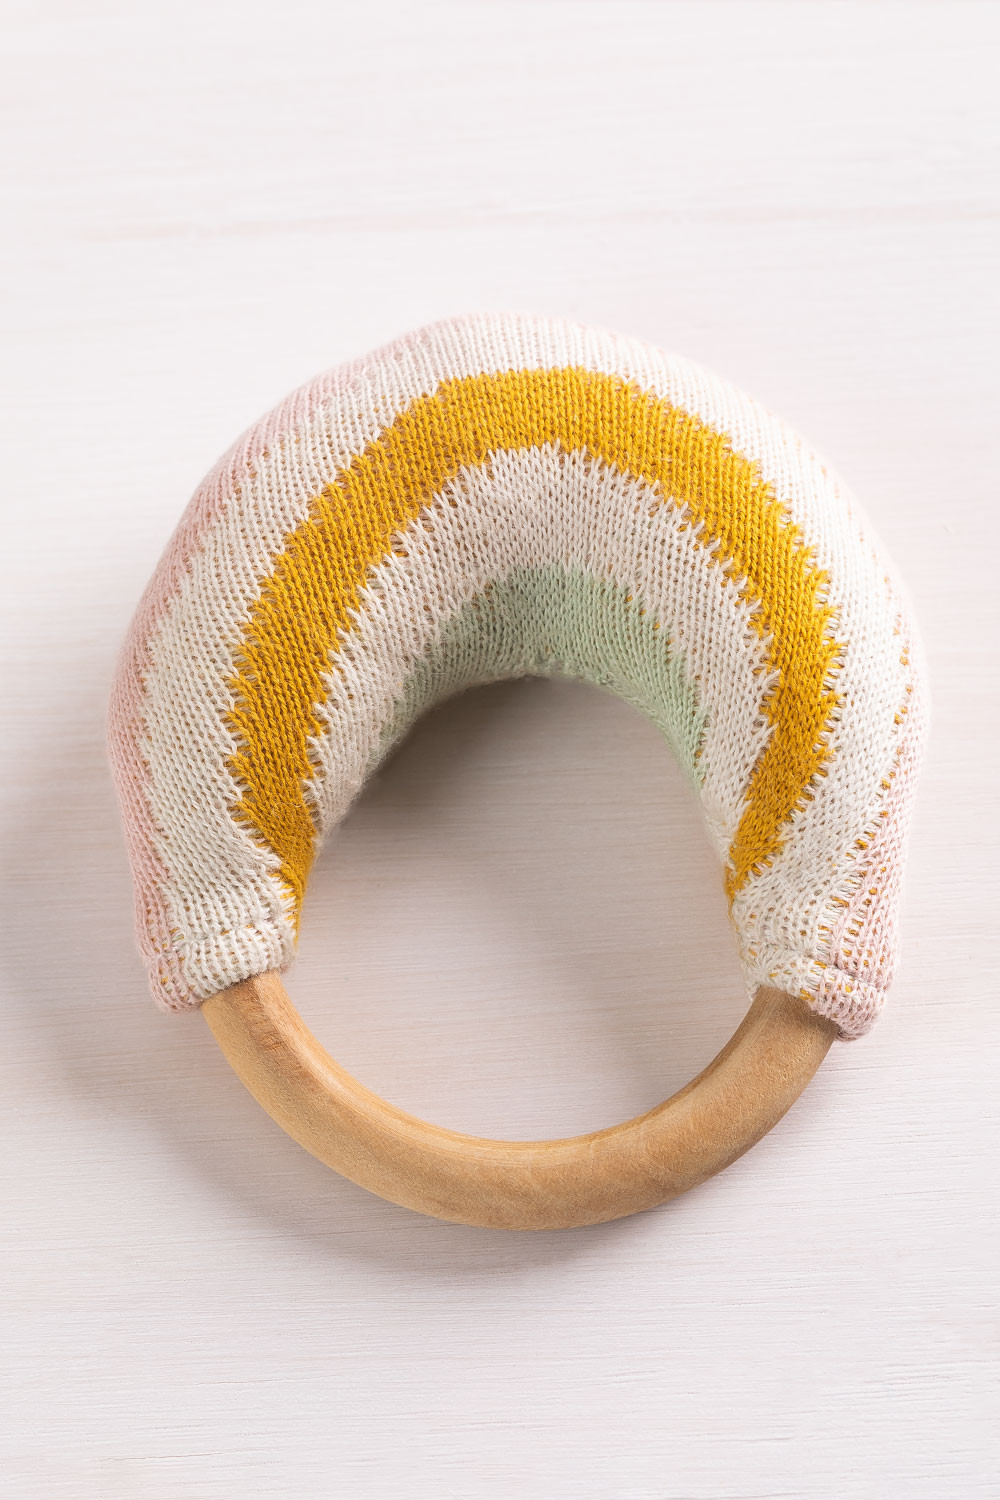 Enfis Kids Cotton Rattle, gallery image 1